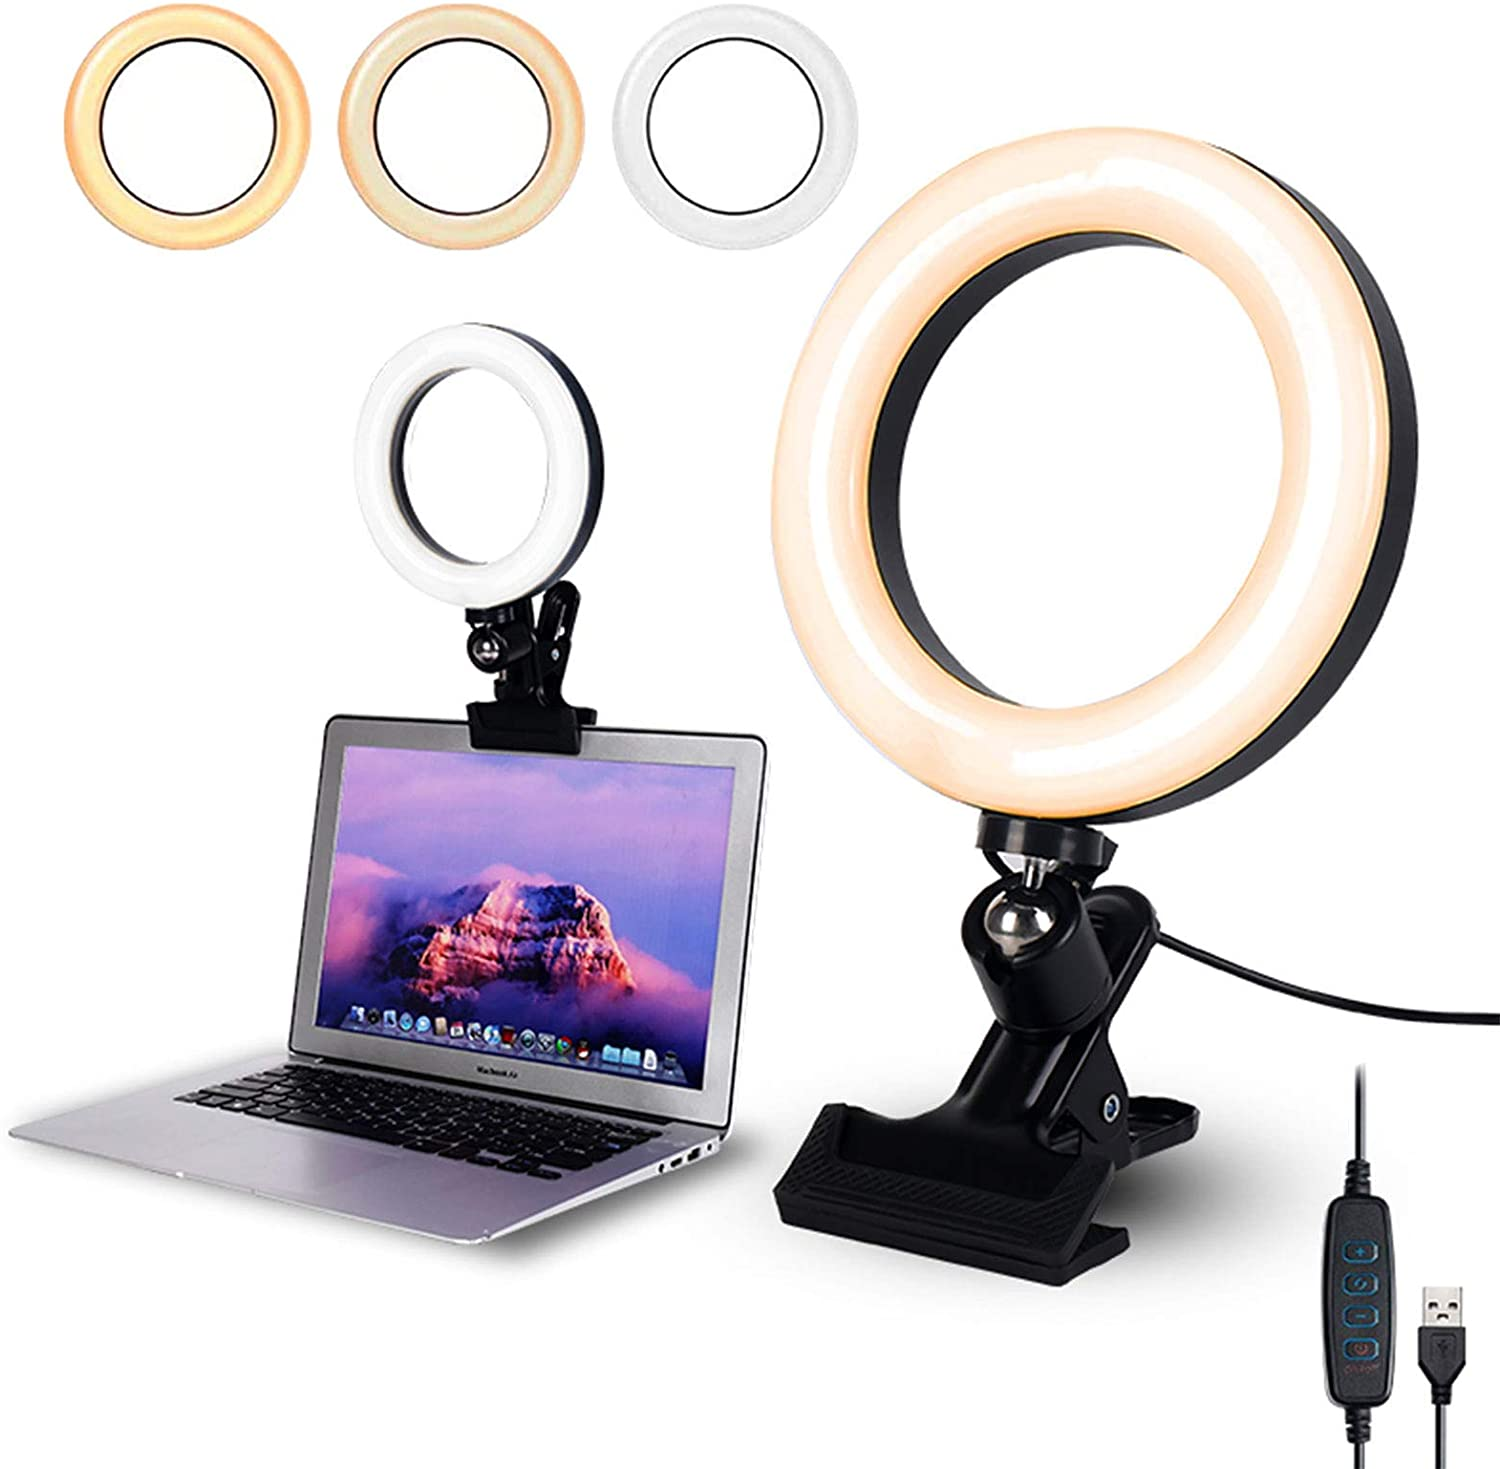 Self Broadcasting and Live Streaming Video Conference Lighting Kit 6.3 LED Selfie Ring Light for Remote Working Zoom Call Lighting Distance Learning Light for Monitor Clip On